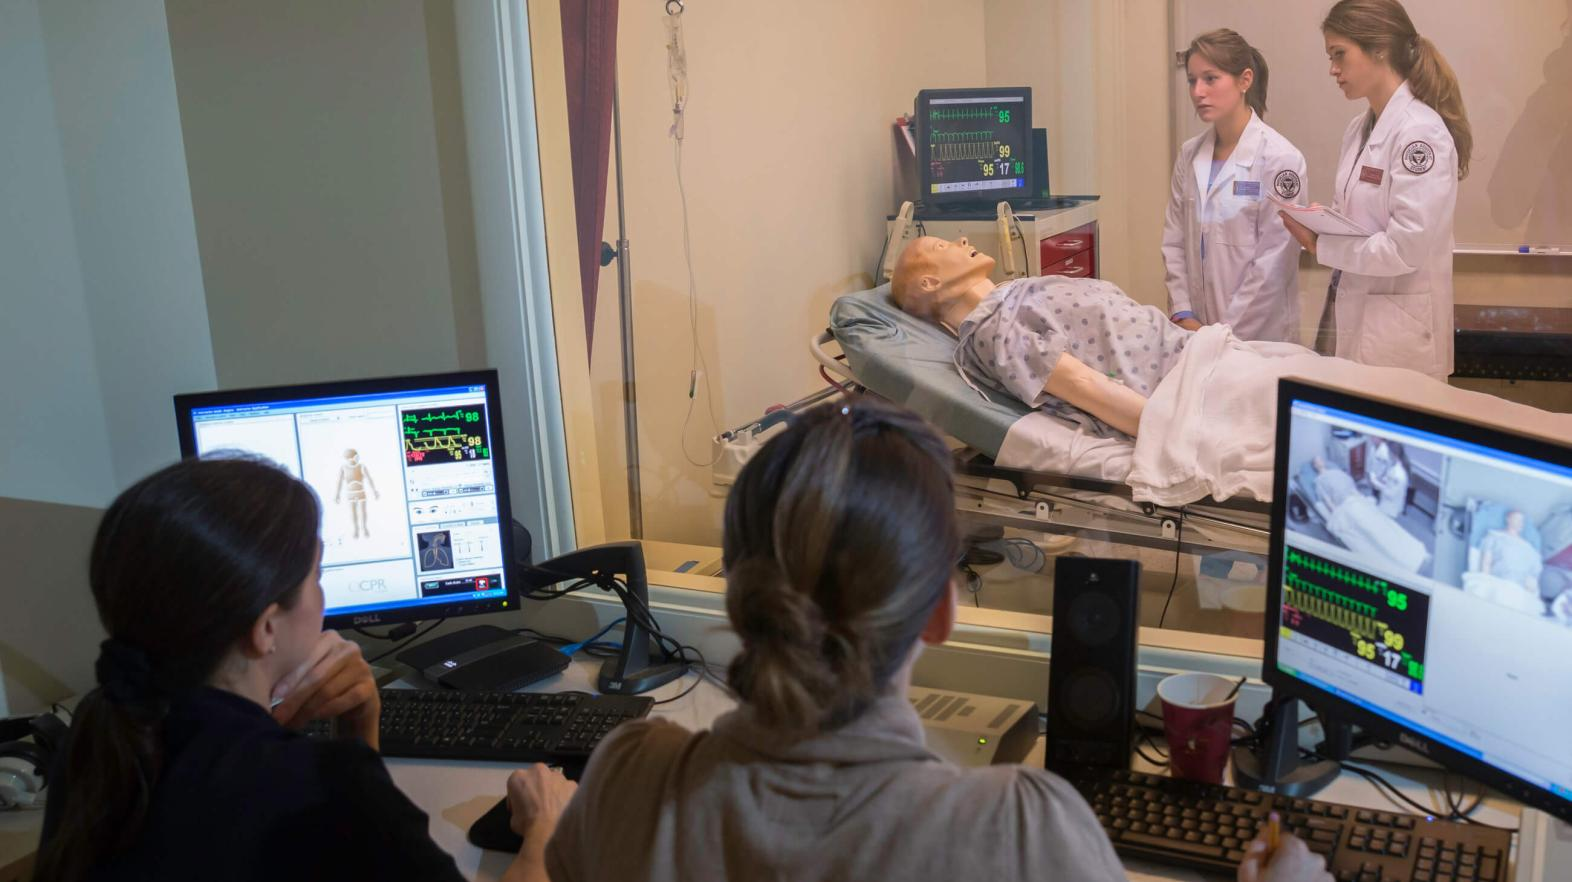 Two students observe two other students who are in the simulation lab.